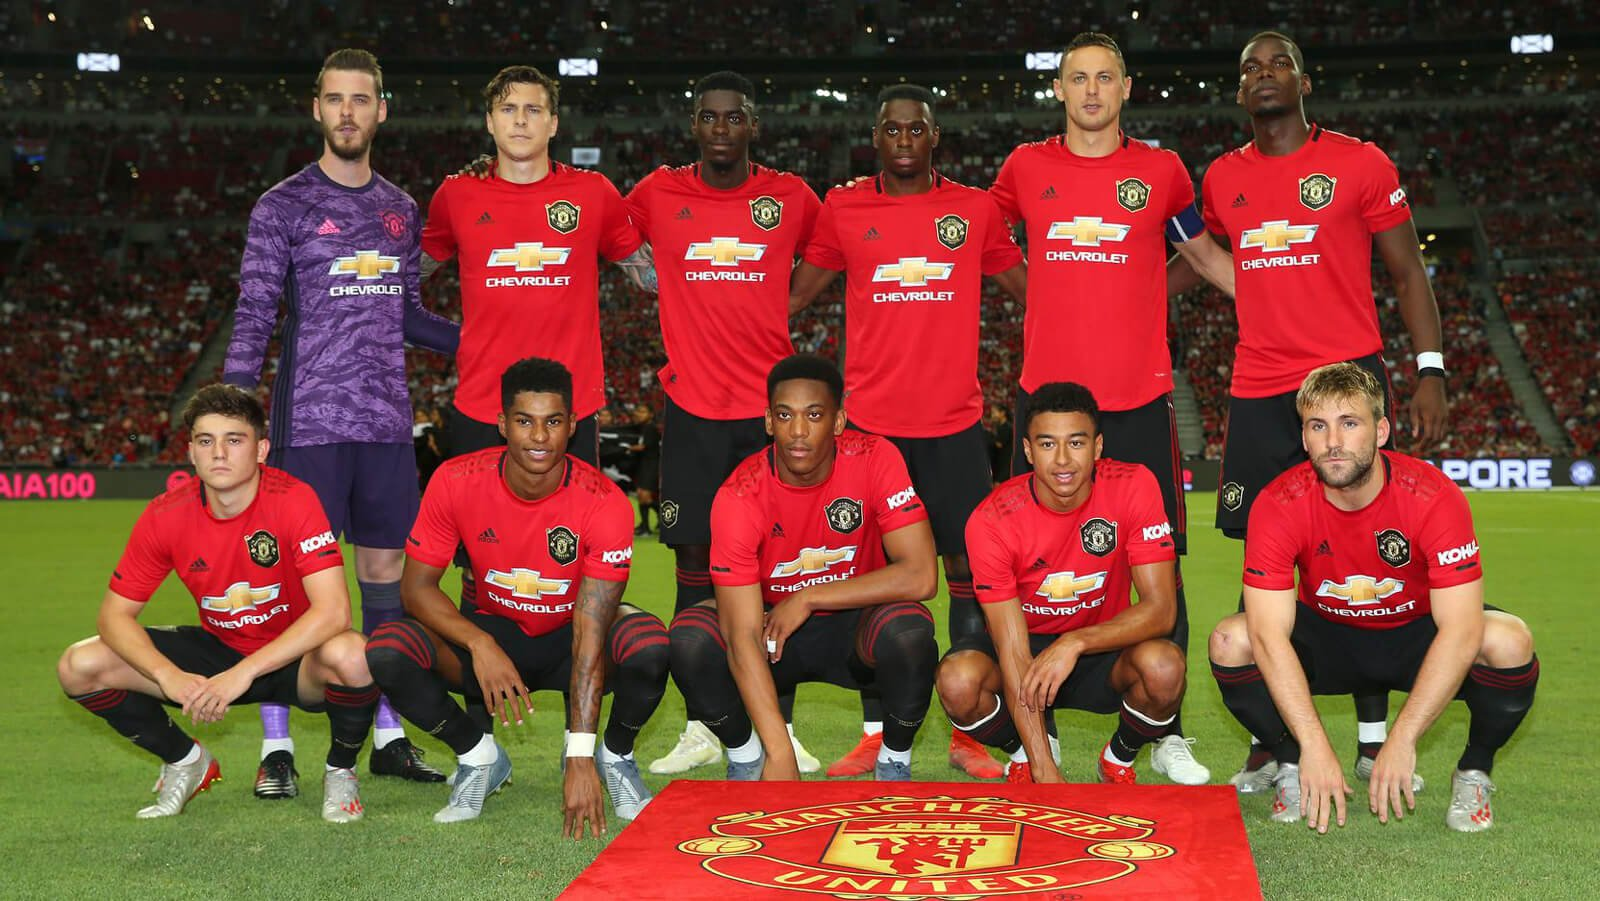 Man Utd Tour 2019 Team